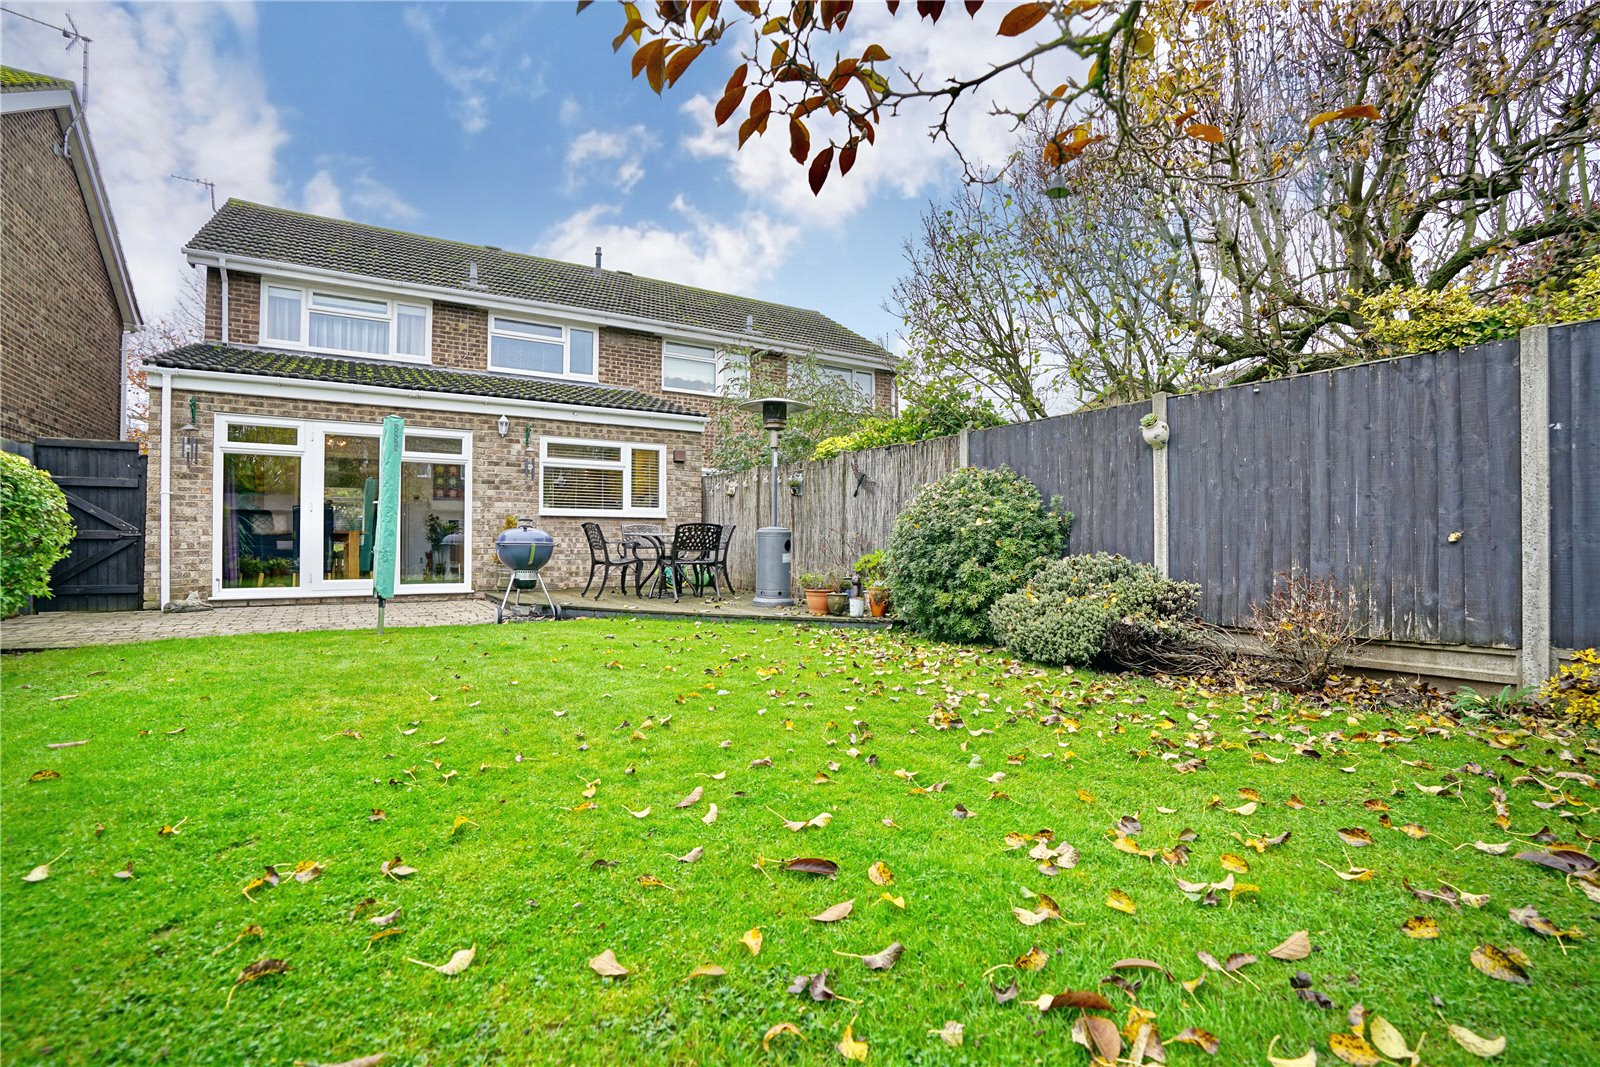 3 bed house for sale in Gainsborough Avenue, Eaton Ford 8